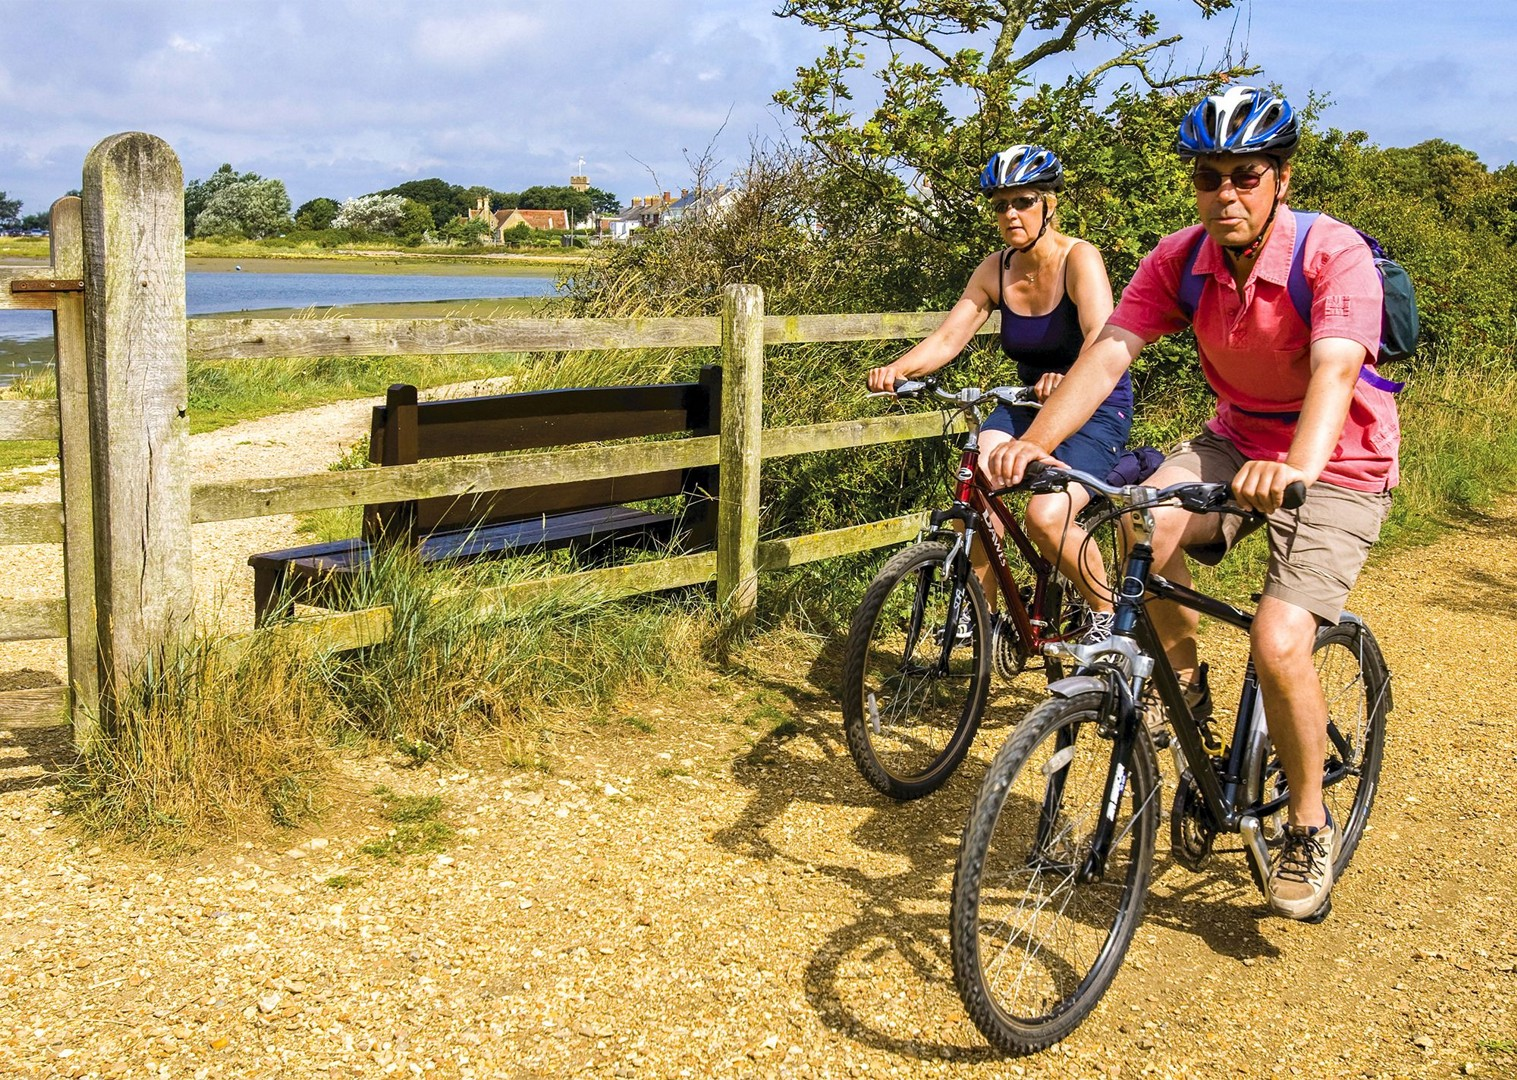 cycling-with-friends-family-self-guided-fun-relaxing-sunny-uk-isle-of-wight.jpg - UK - Isle of Wight - Freshwater Bay - Self-Guided Leisure Cycling Holiday - Leisure Cycling